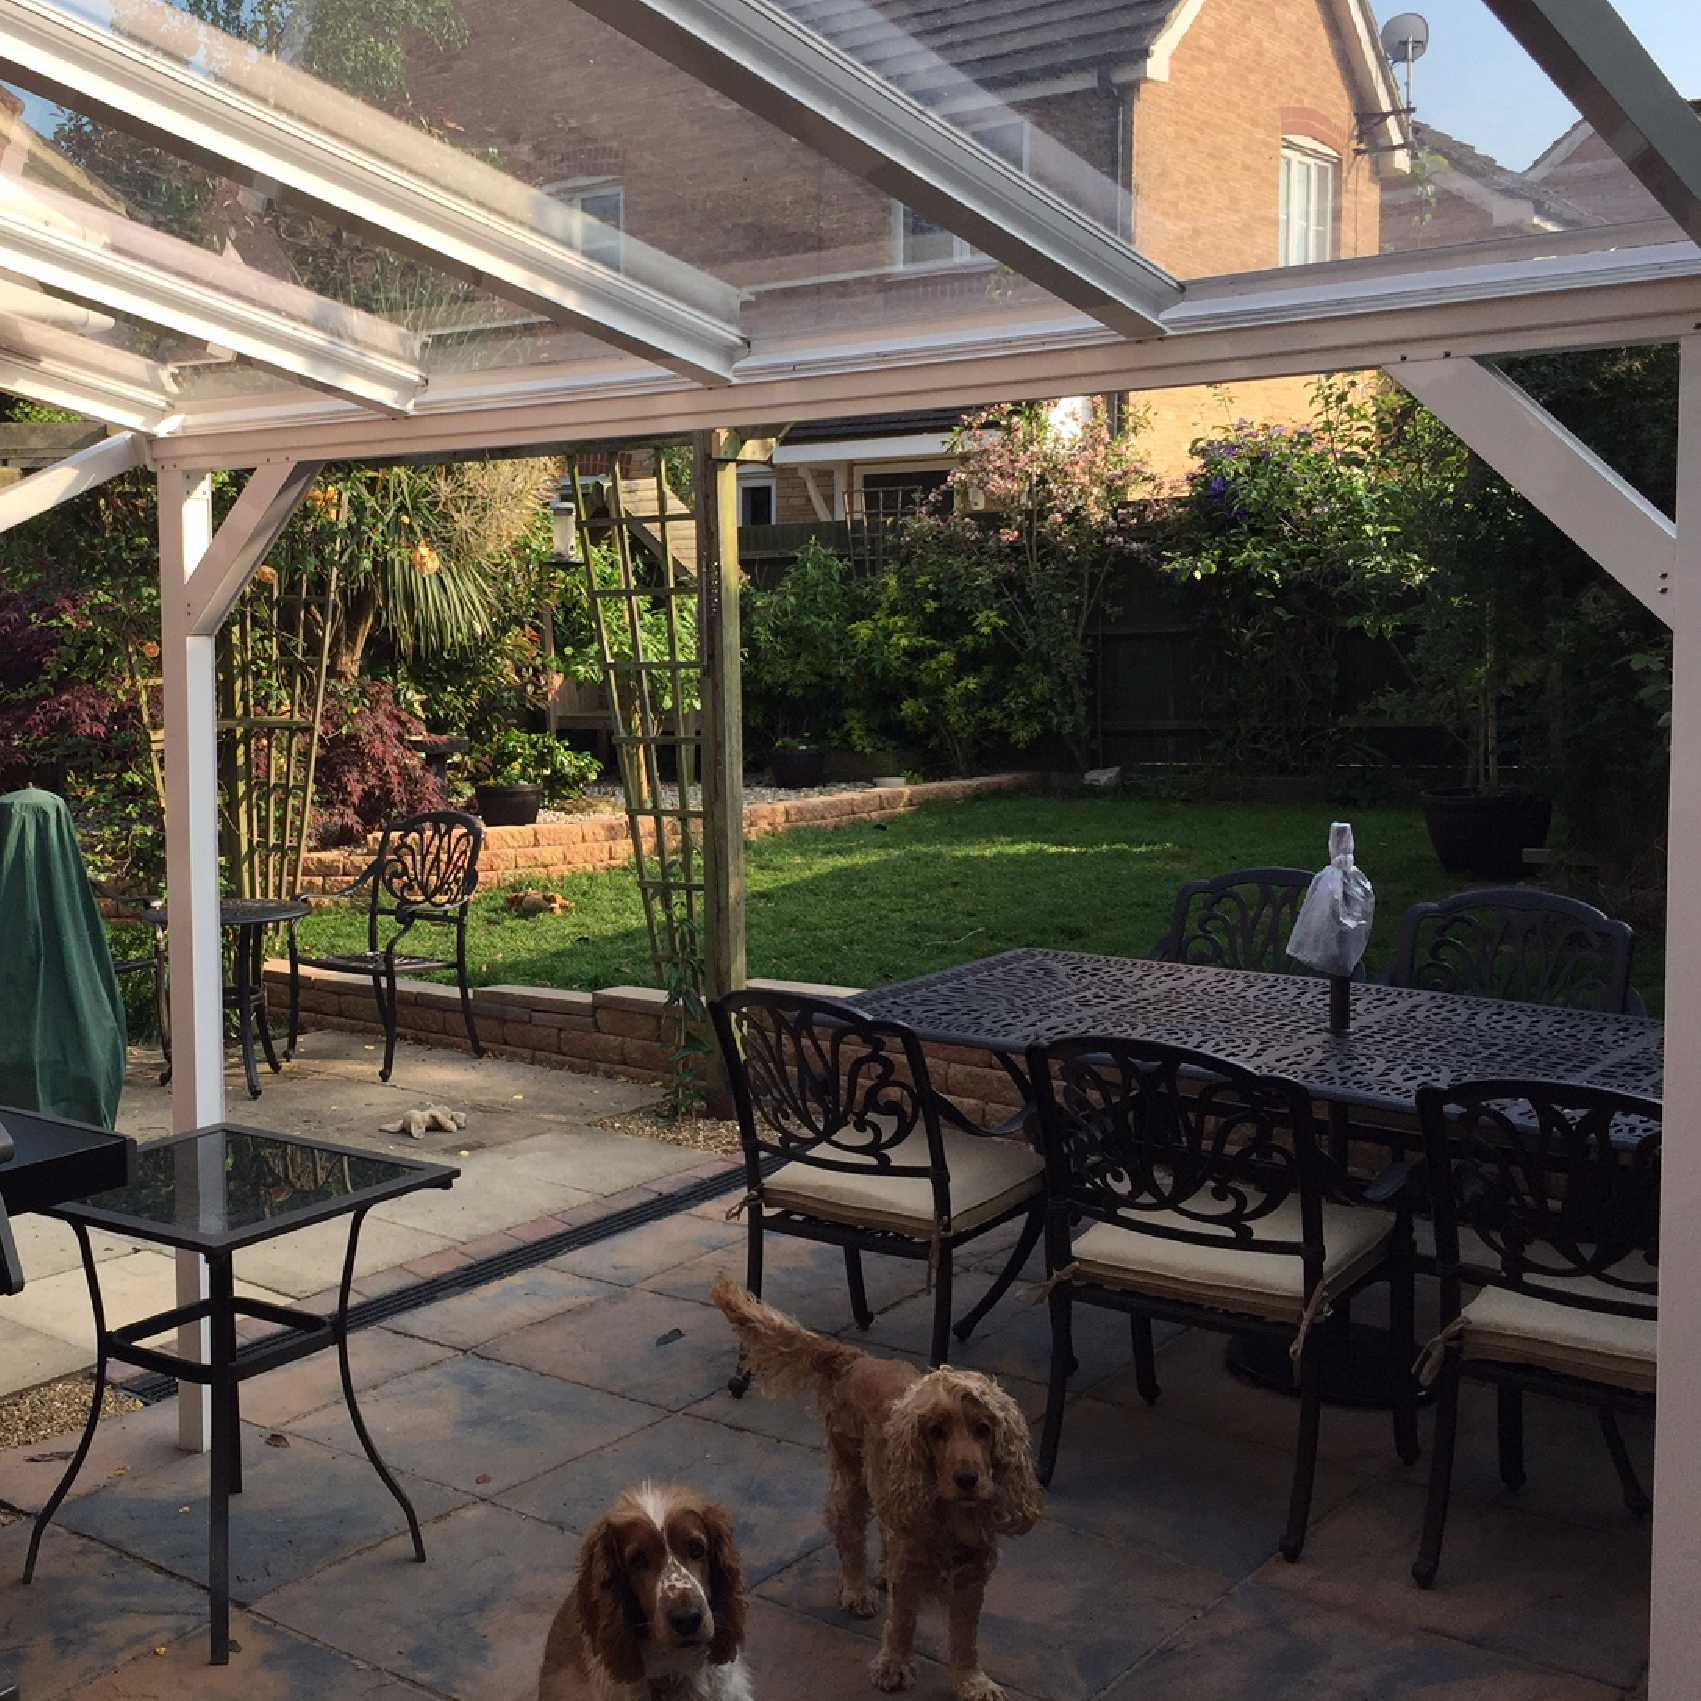 Affordable Omega Smart Lean-To Canopy with 6mm Glass Clear Plate Polycarbonate Glazing - 9.1m (W) x 3.0m (P), (5) Supporting Posts